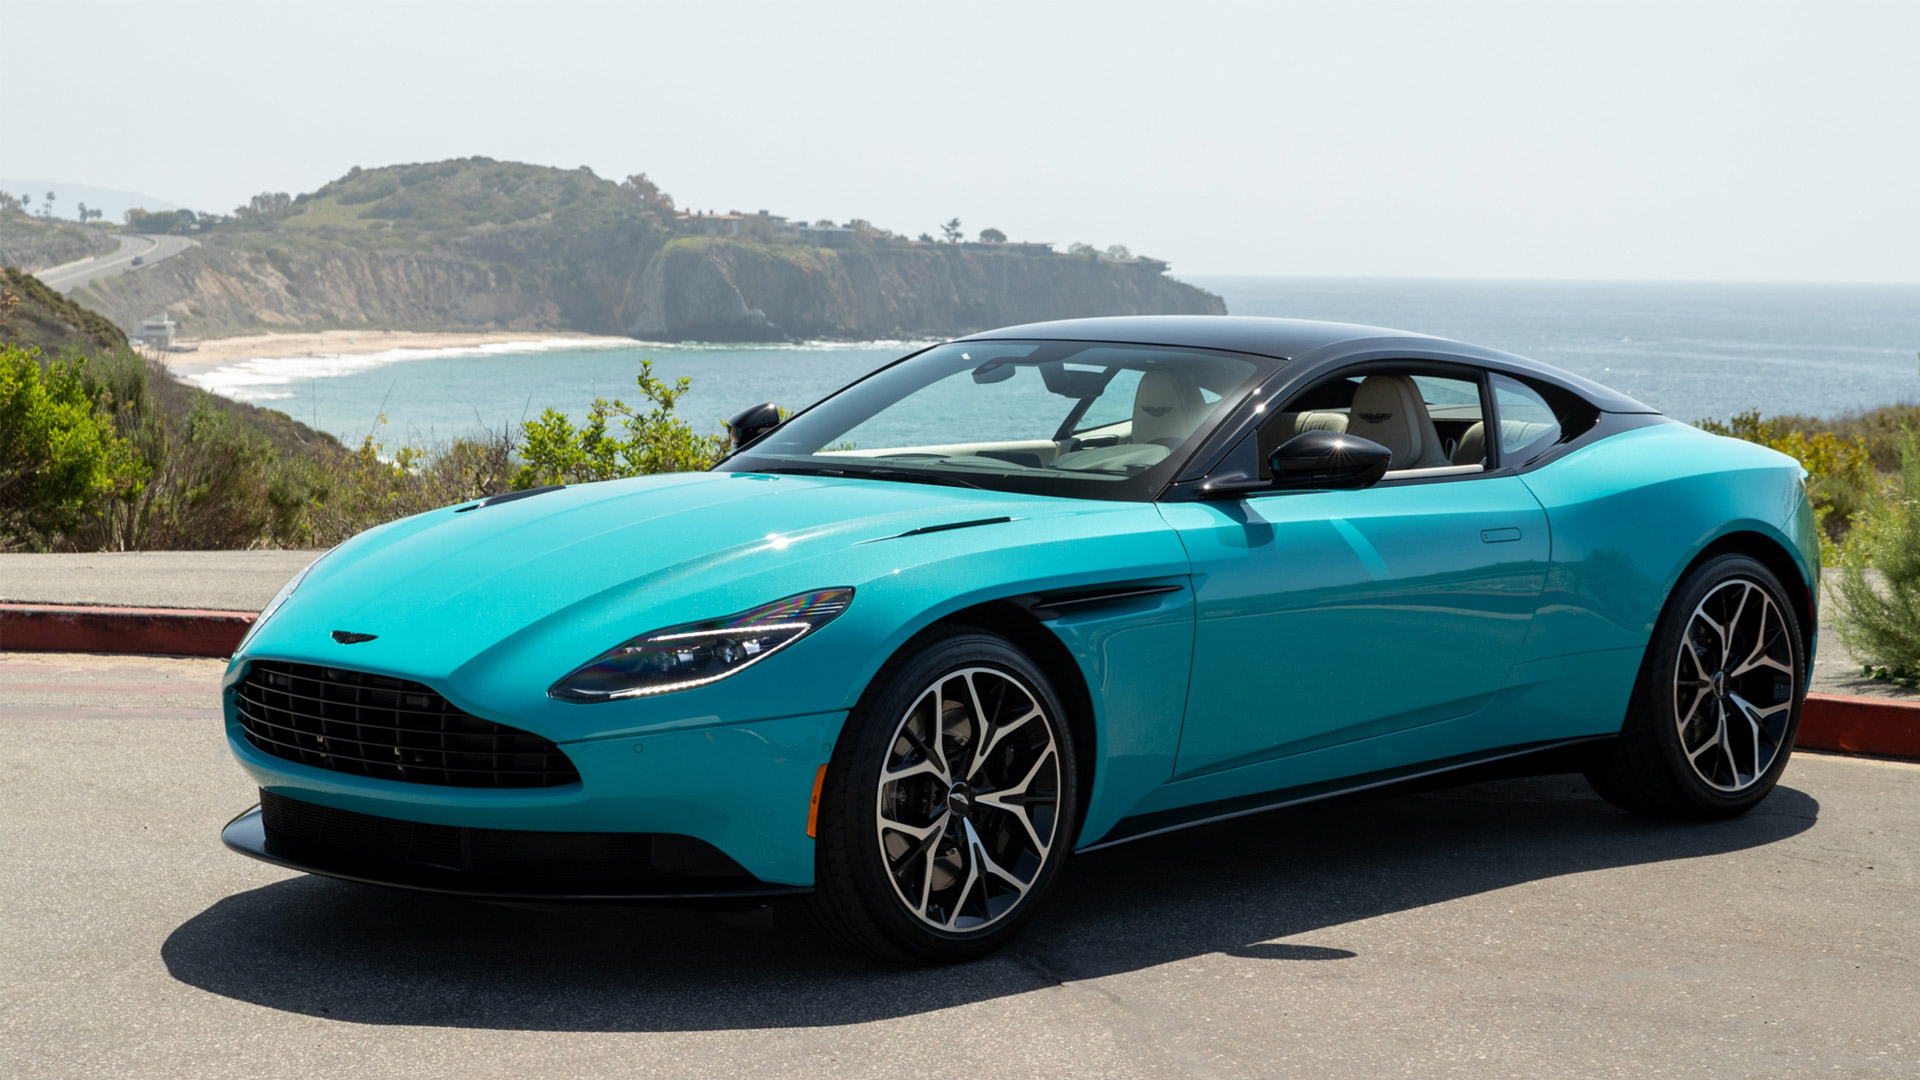 The Aston Martin DB11 Coupe in Butterfly Teal